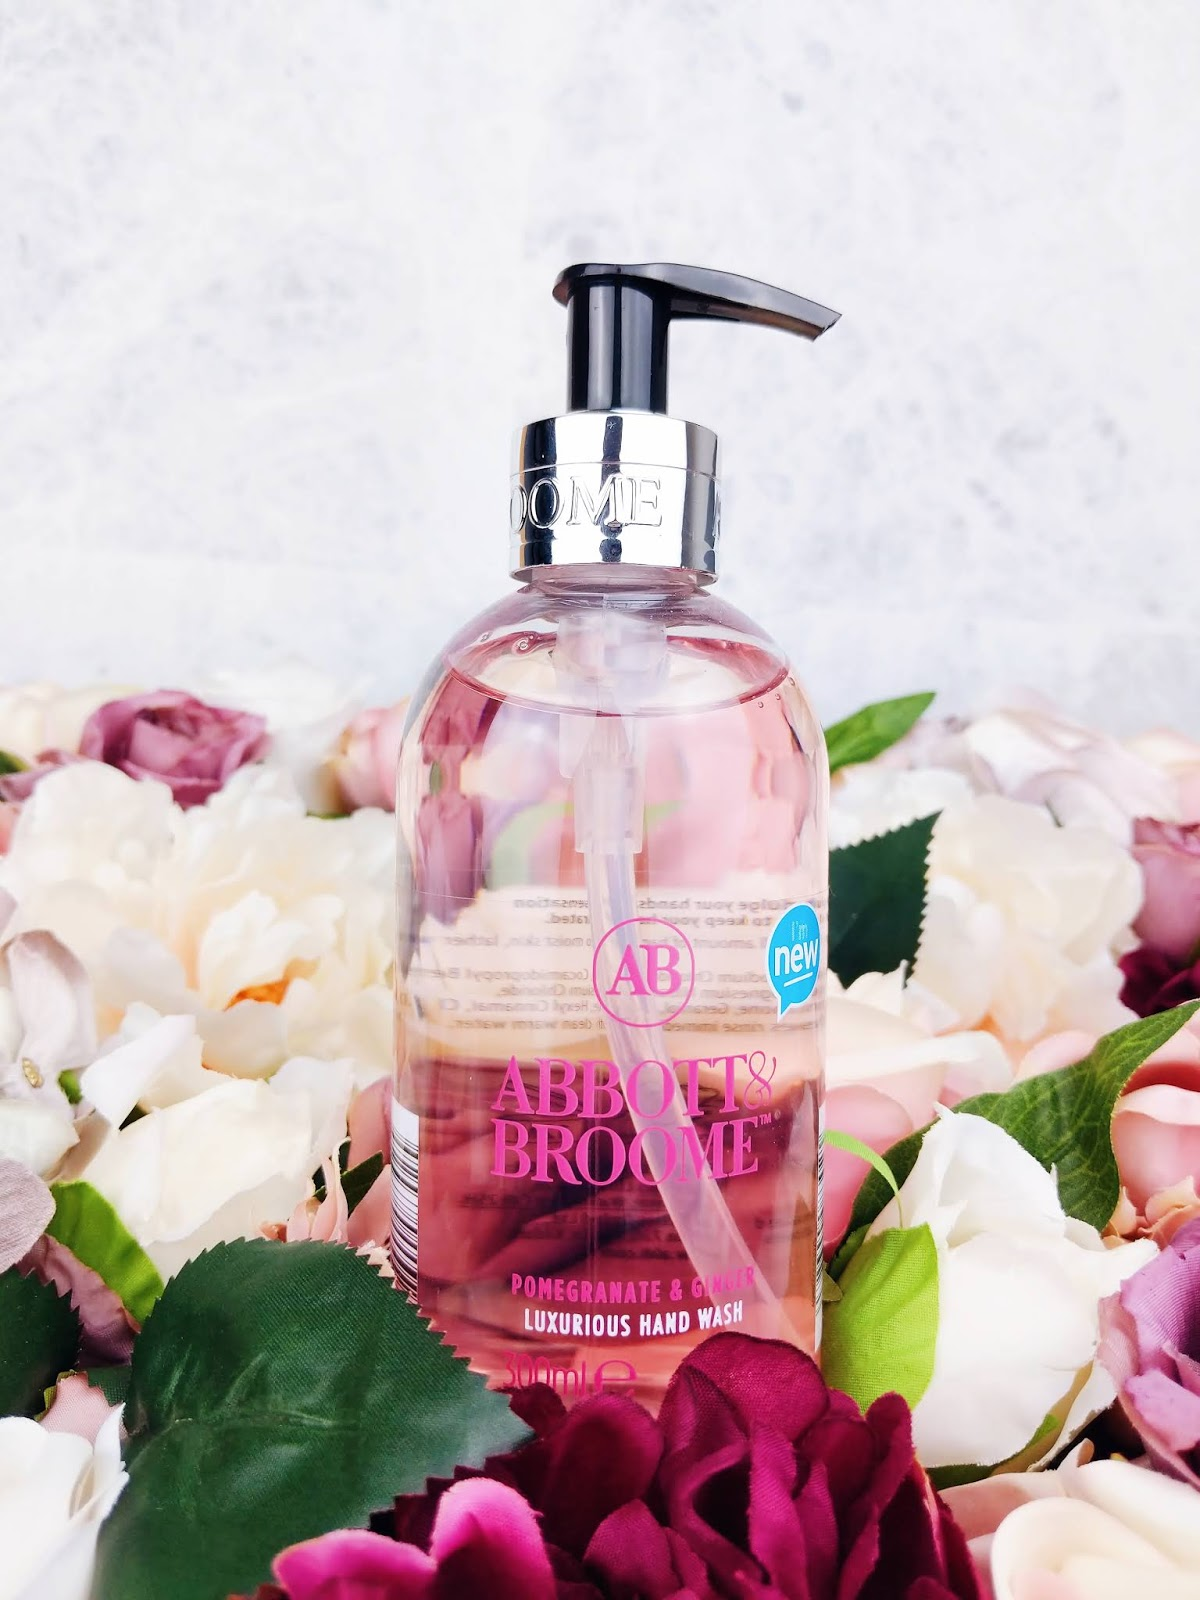 Abbott_and_Broome_Pomegranate_and_Ginger_Hand_Wash